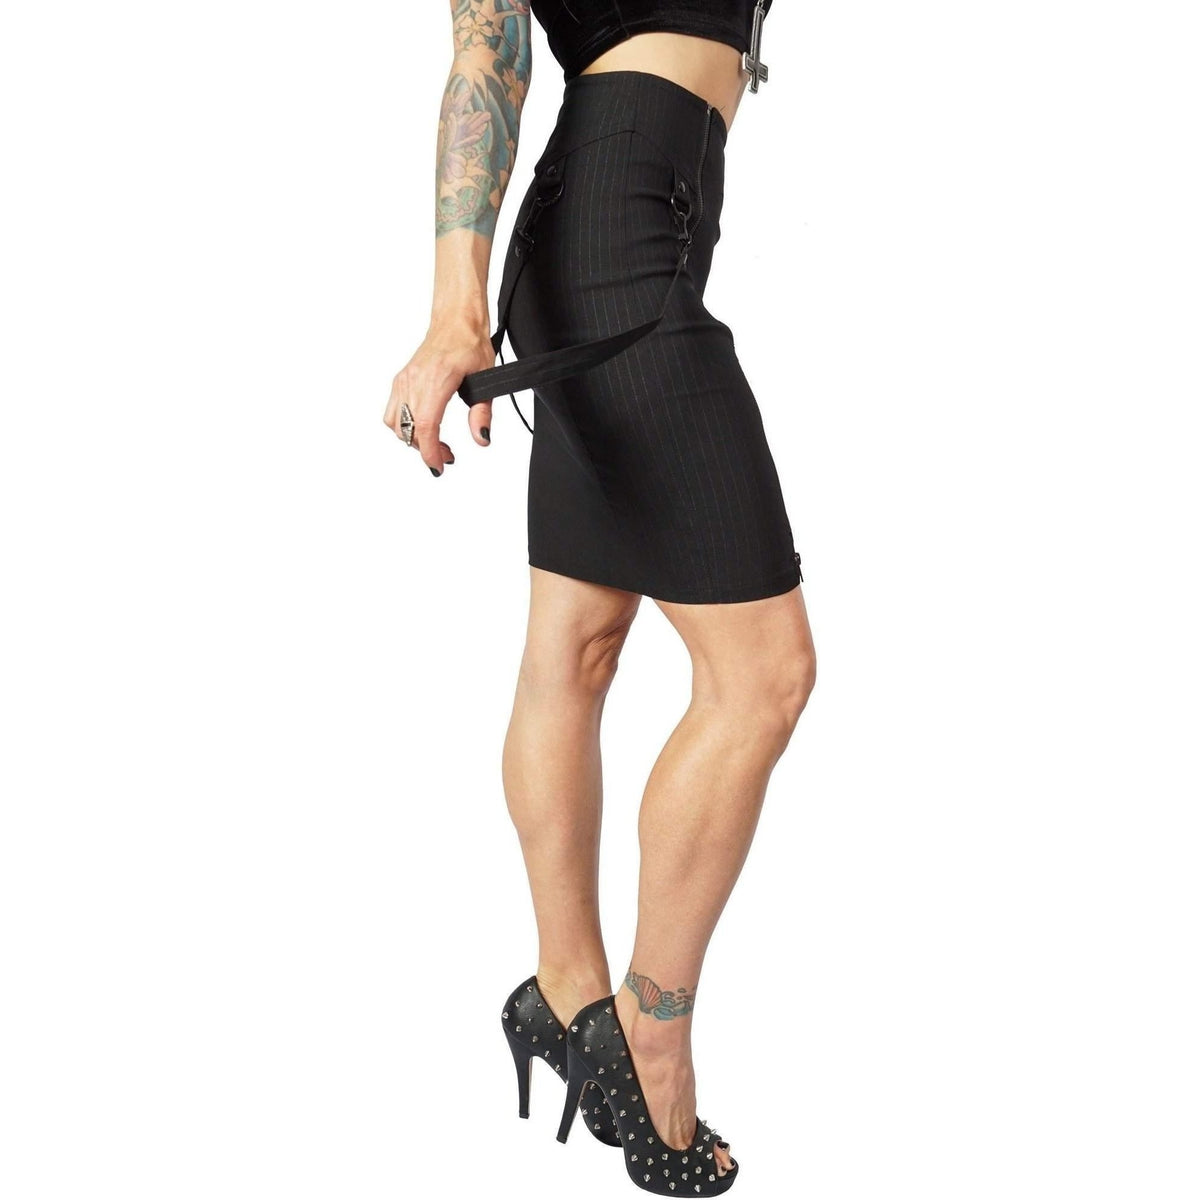 Lip Service Gangsta Pranksta Bondage Pencil Skirt Black With Black Zip And Lock-Salemonster